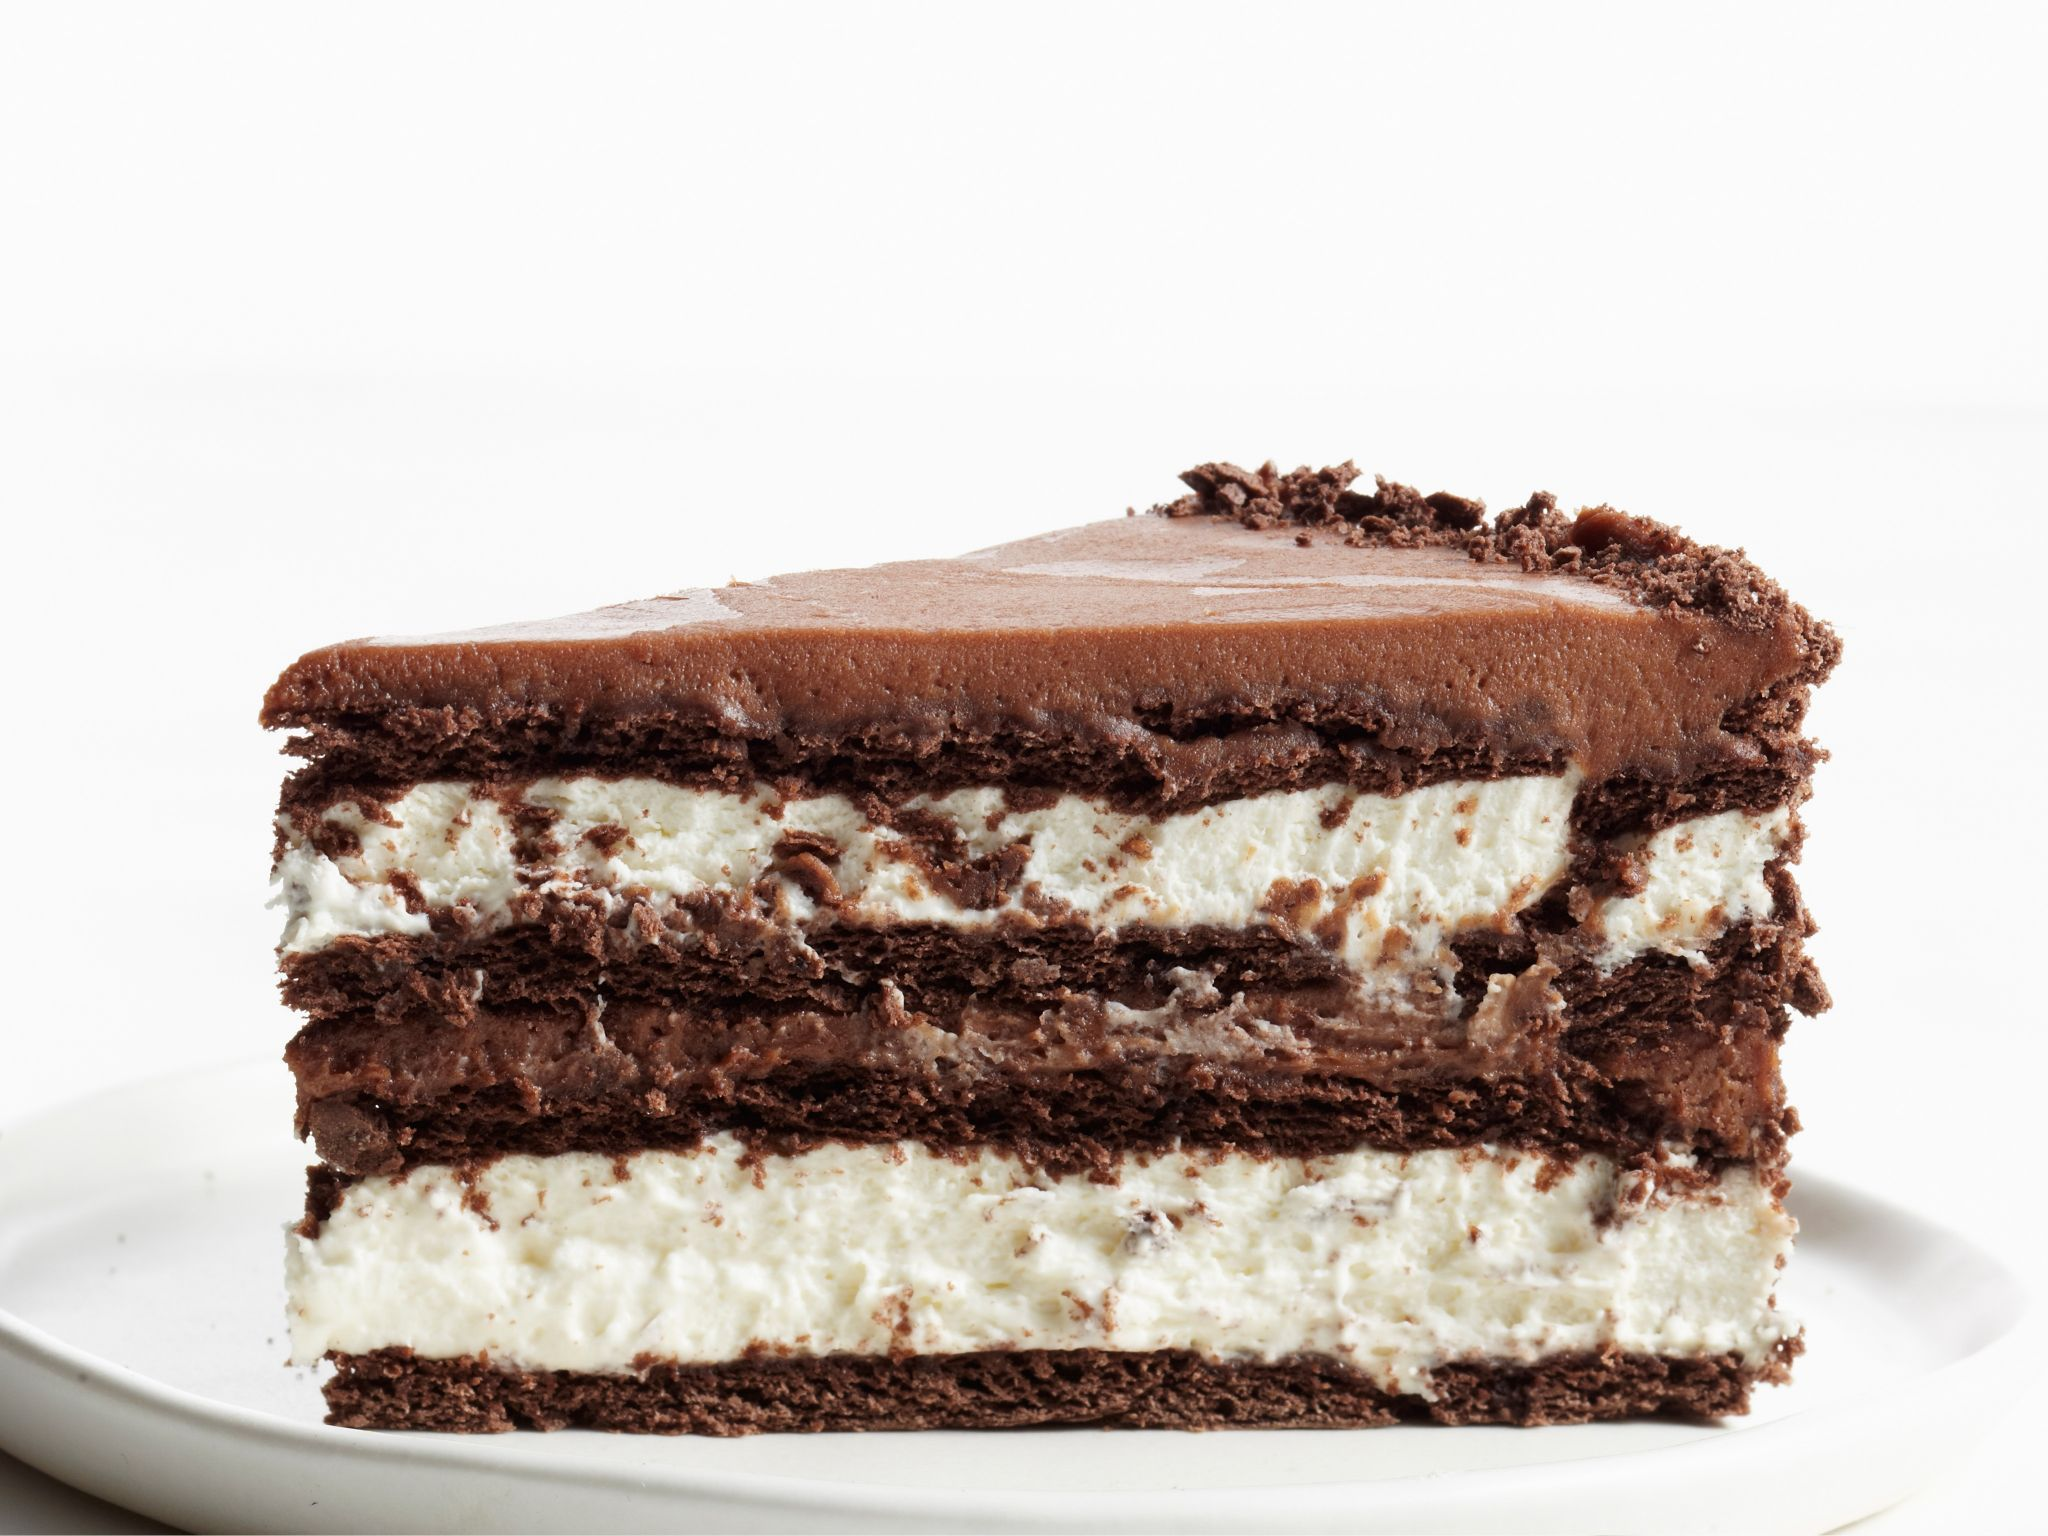 Weekend dessert recipes food network icebox cake recipes weekend dessert recipes food network forumfinder Image collections